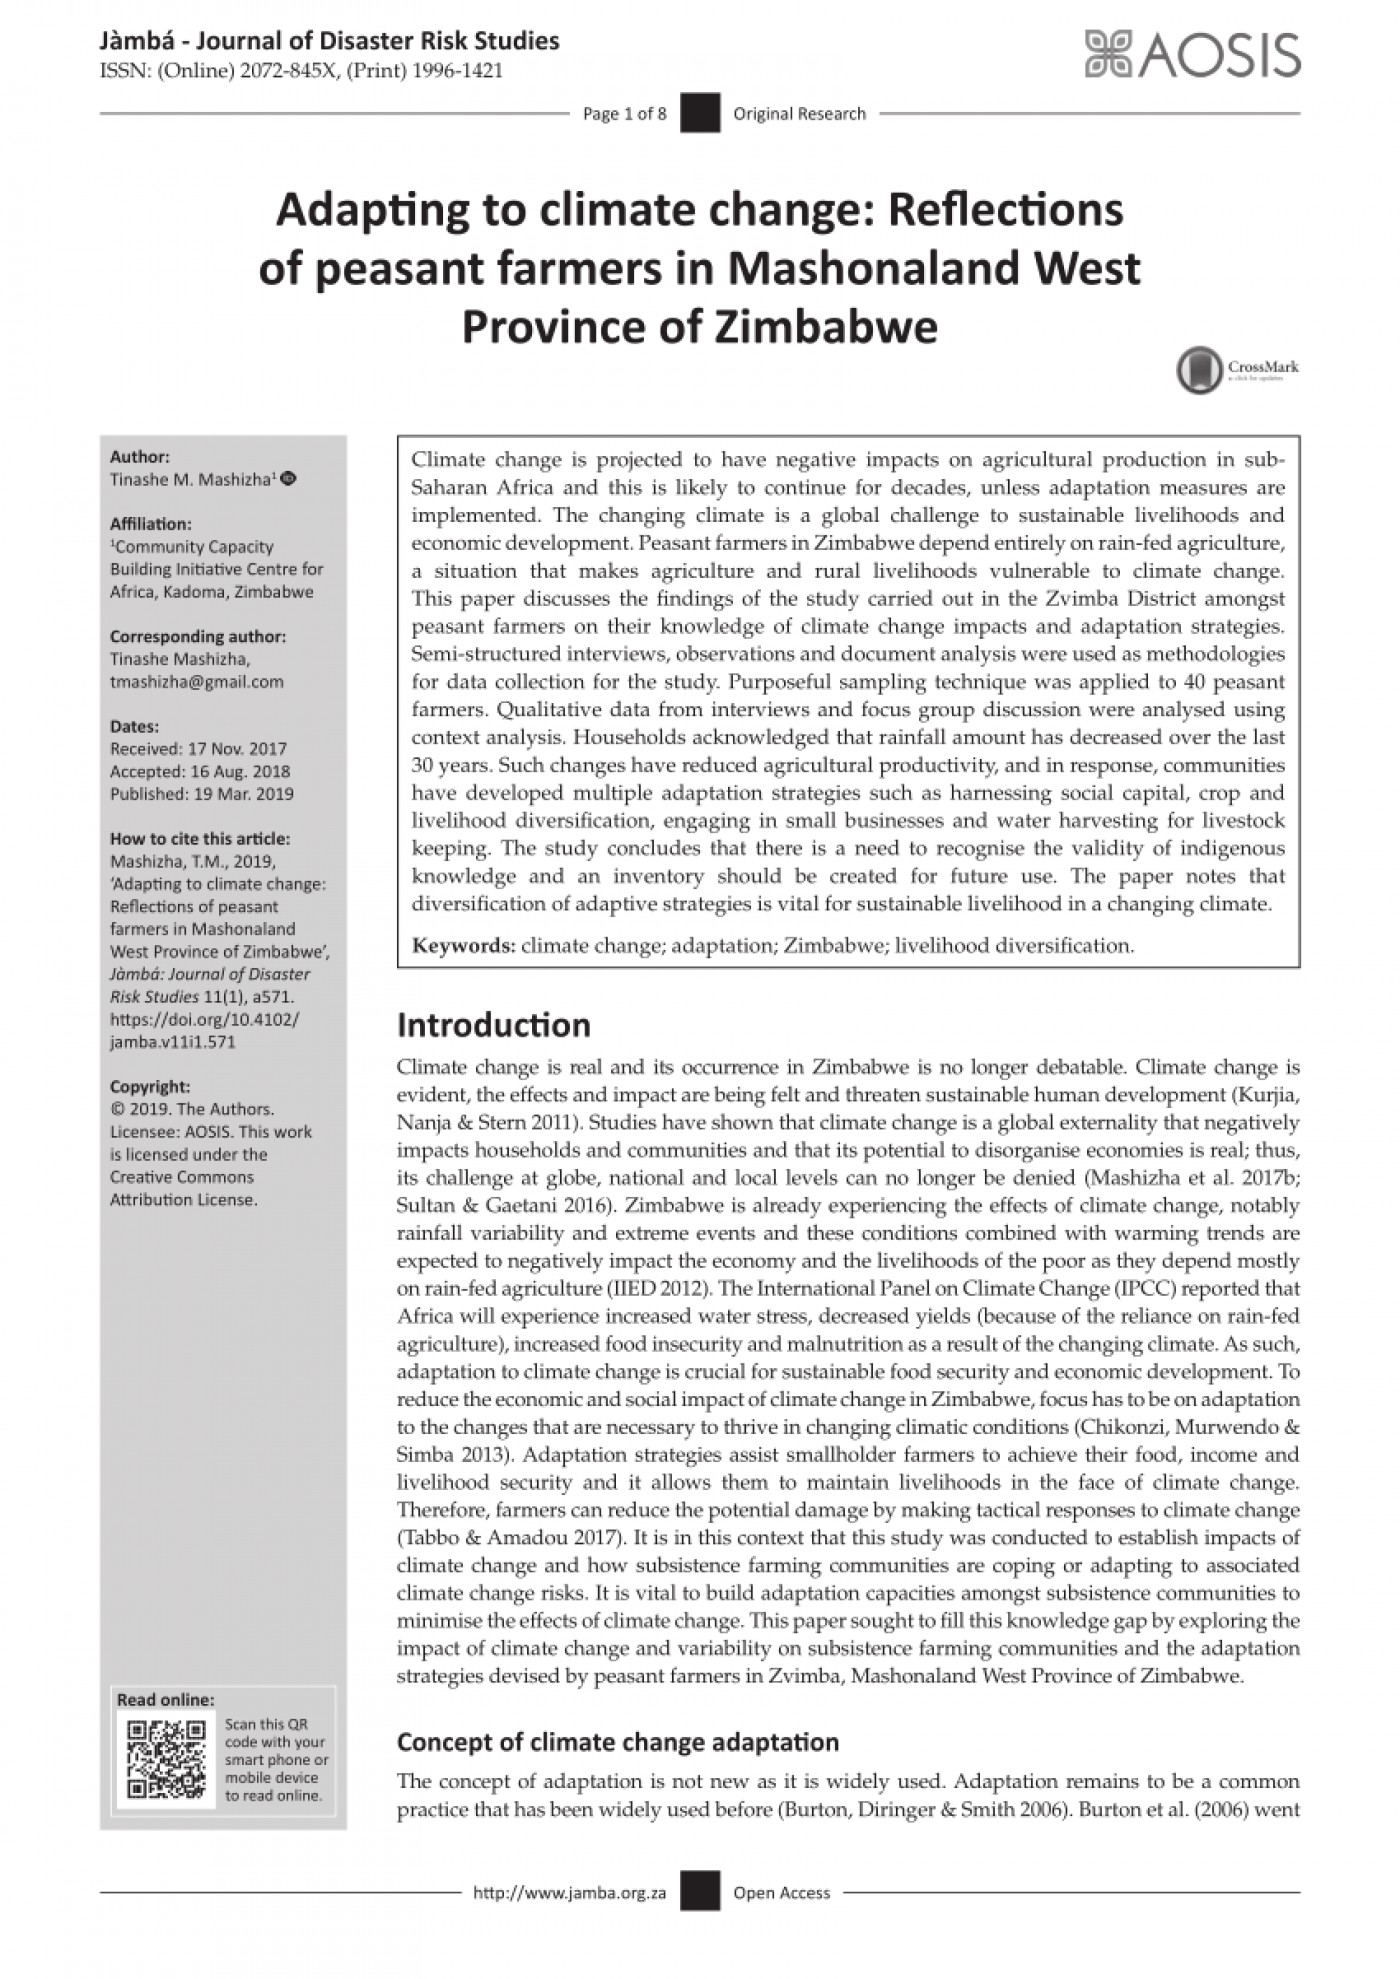 005 Research Paper Pdf Papers On Climate Change In Zimbabwe Imposing 1400